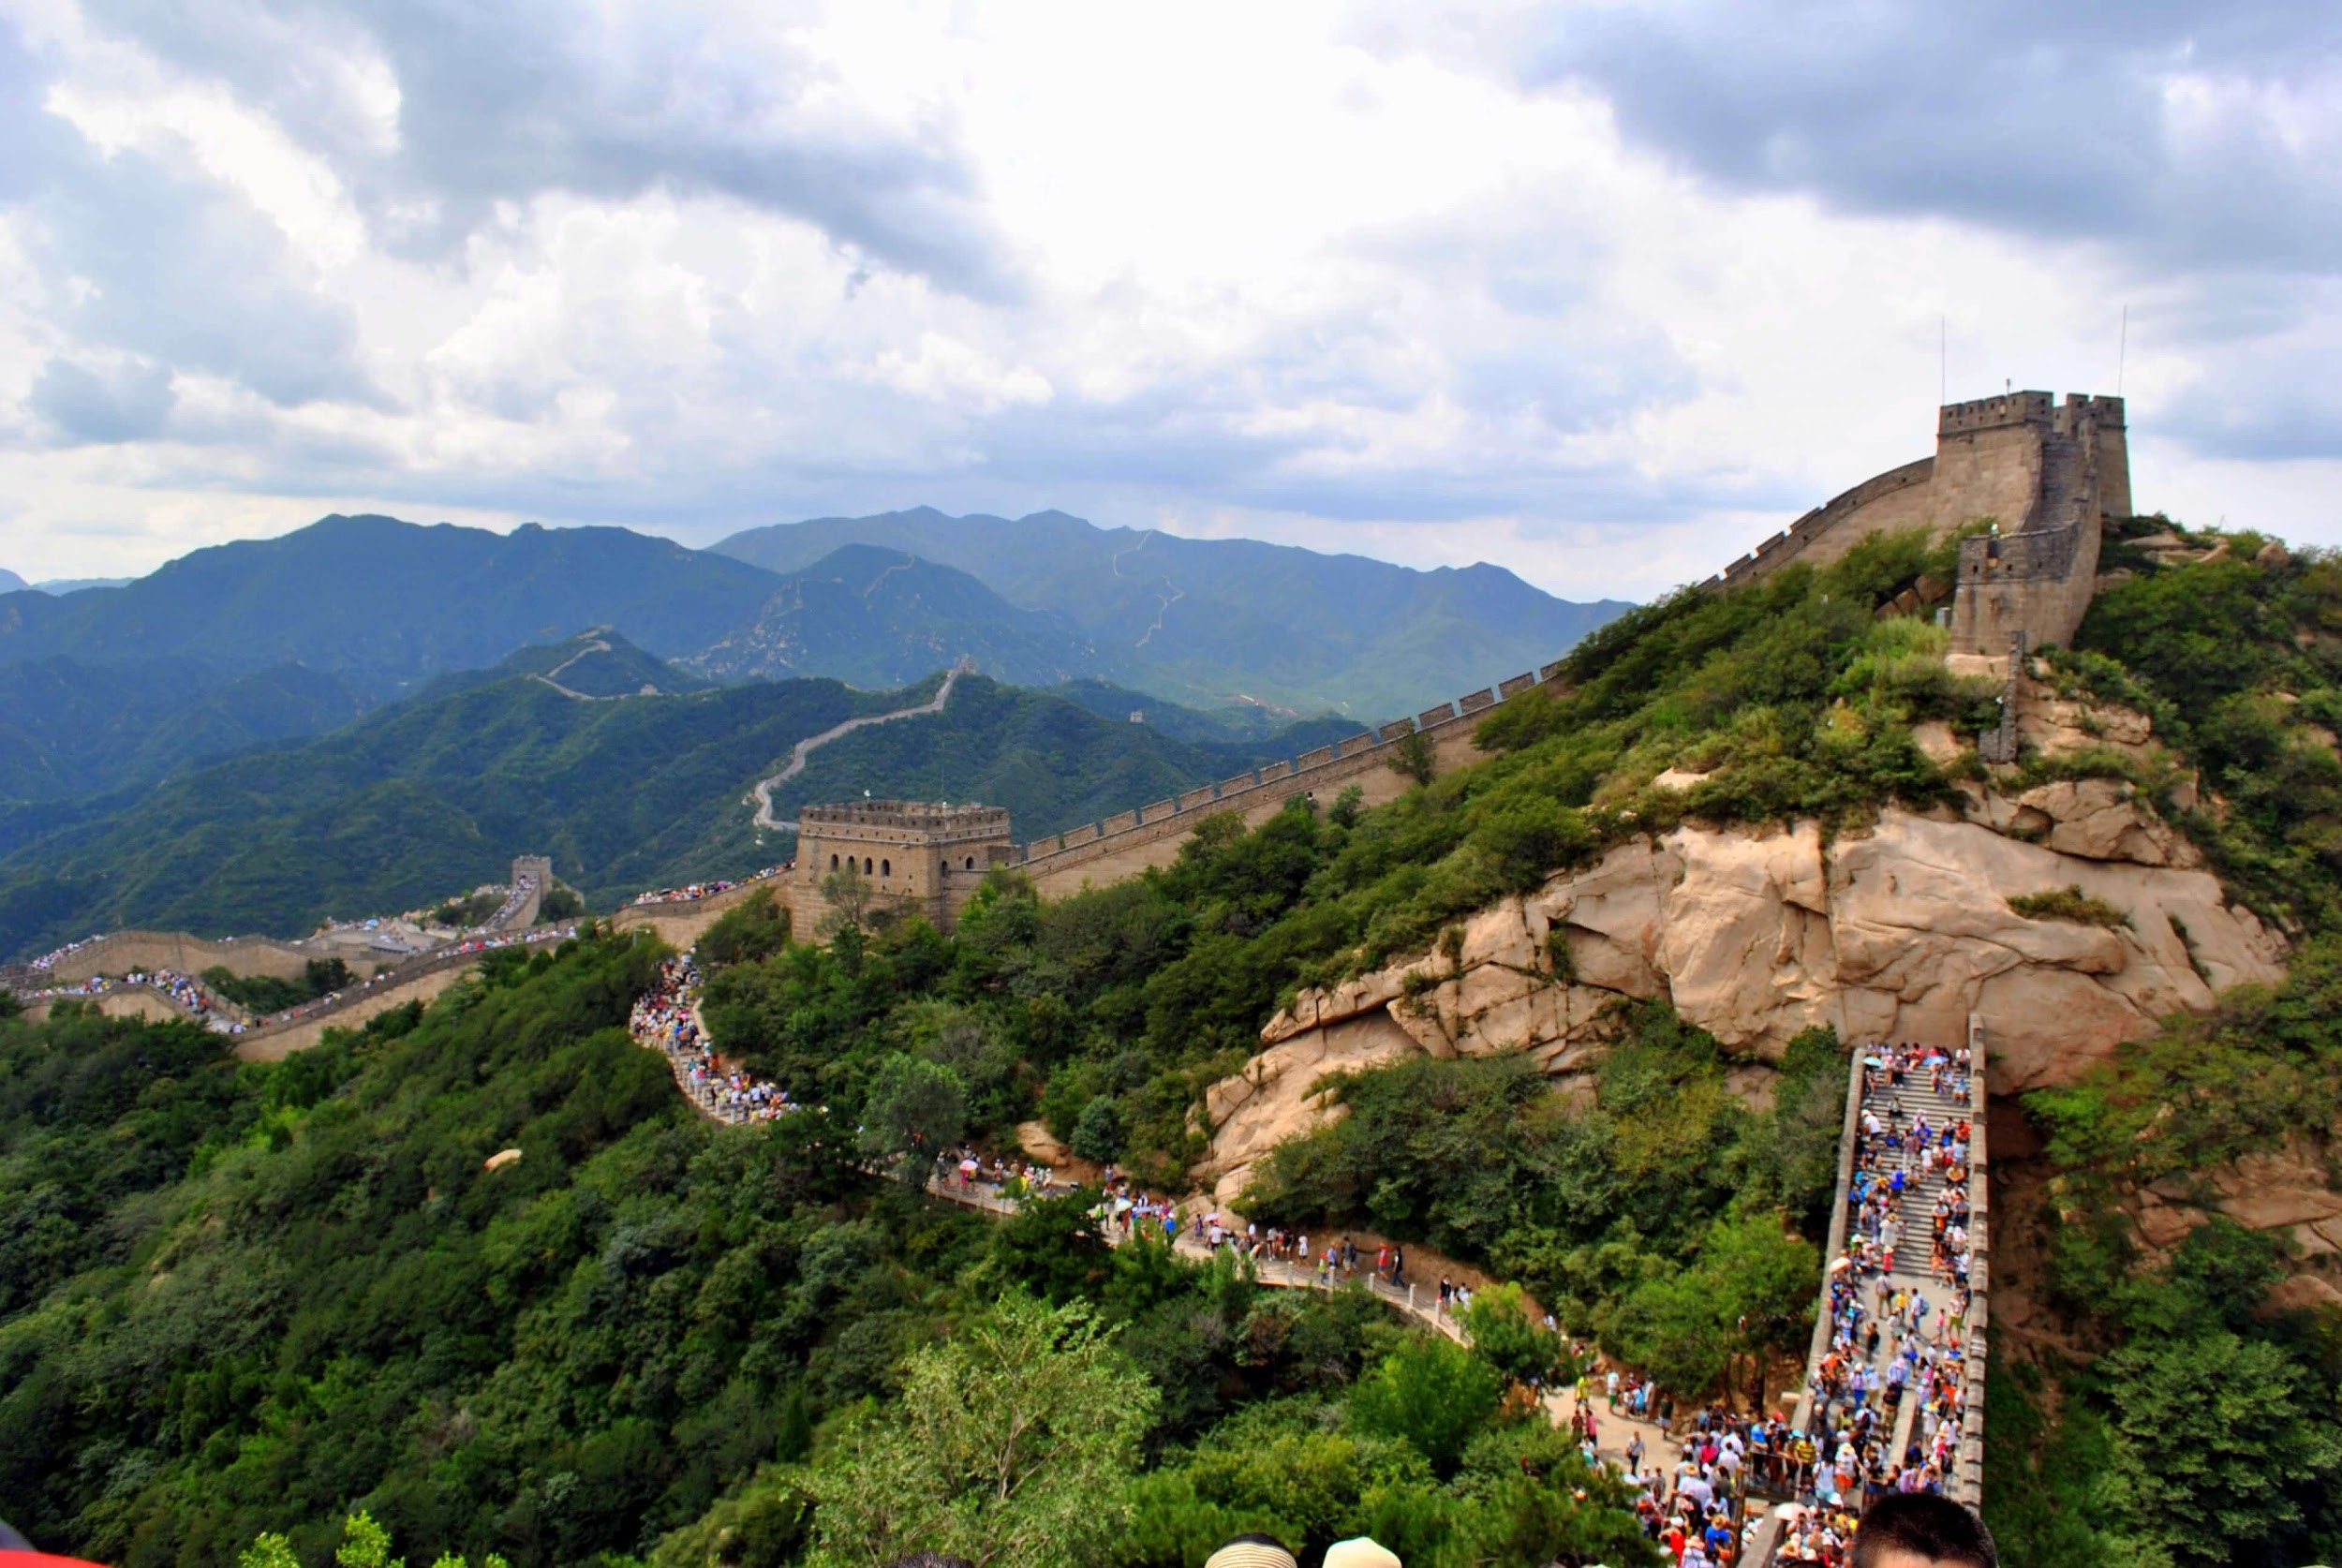 Top 3 China tour packages for 2019